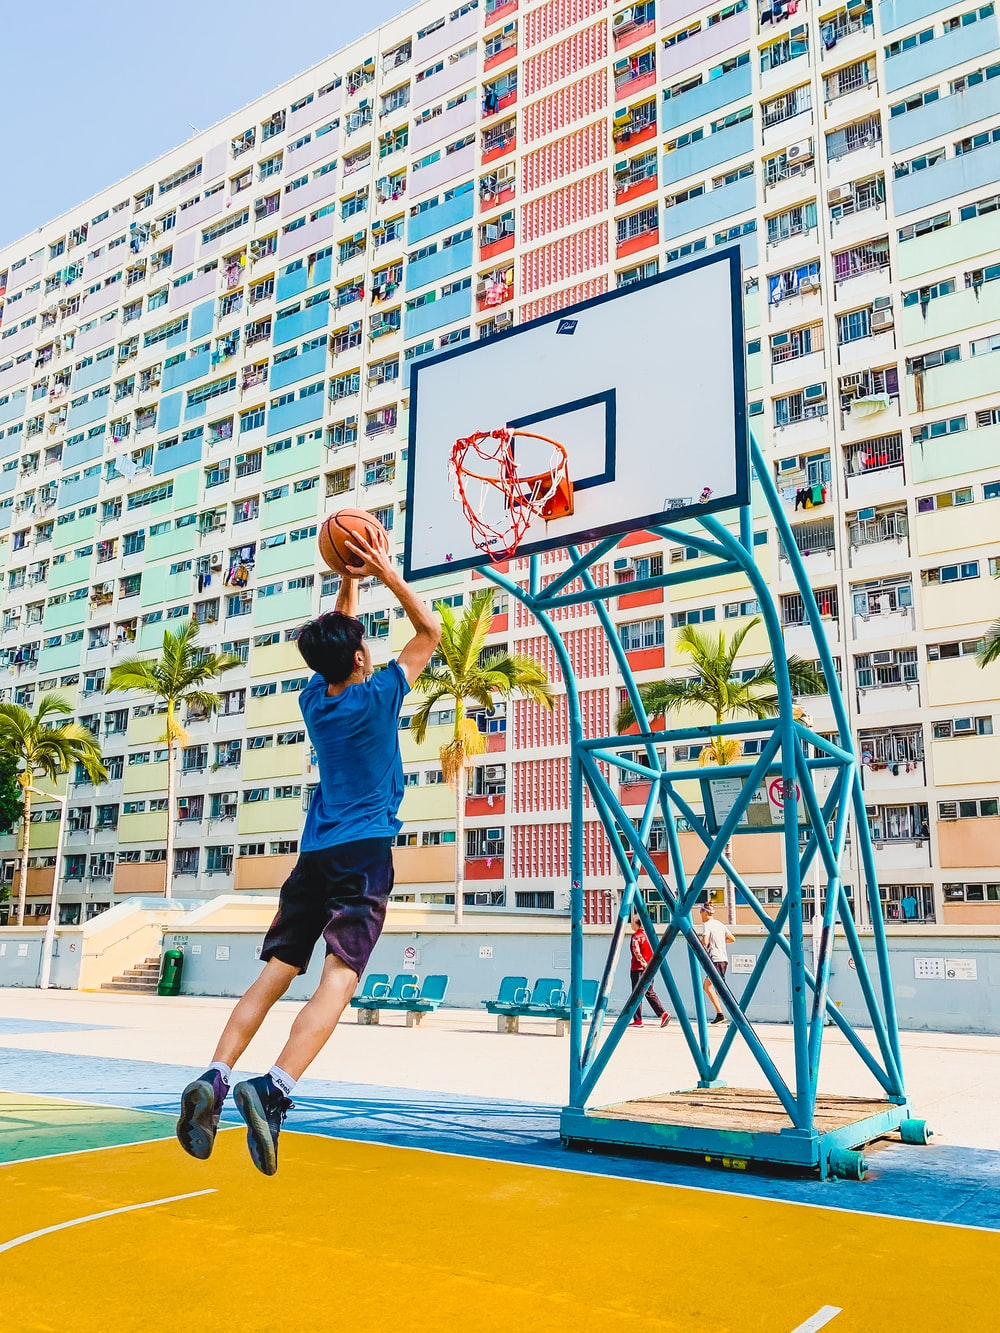 man in blue shirt and black shorts playing basketball during daytime